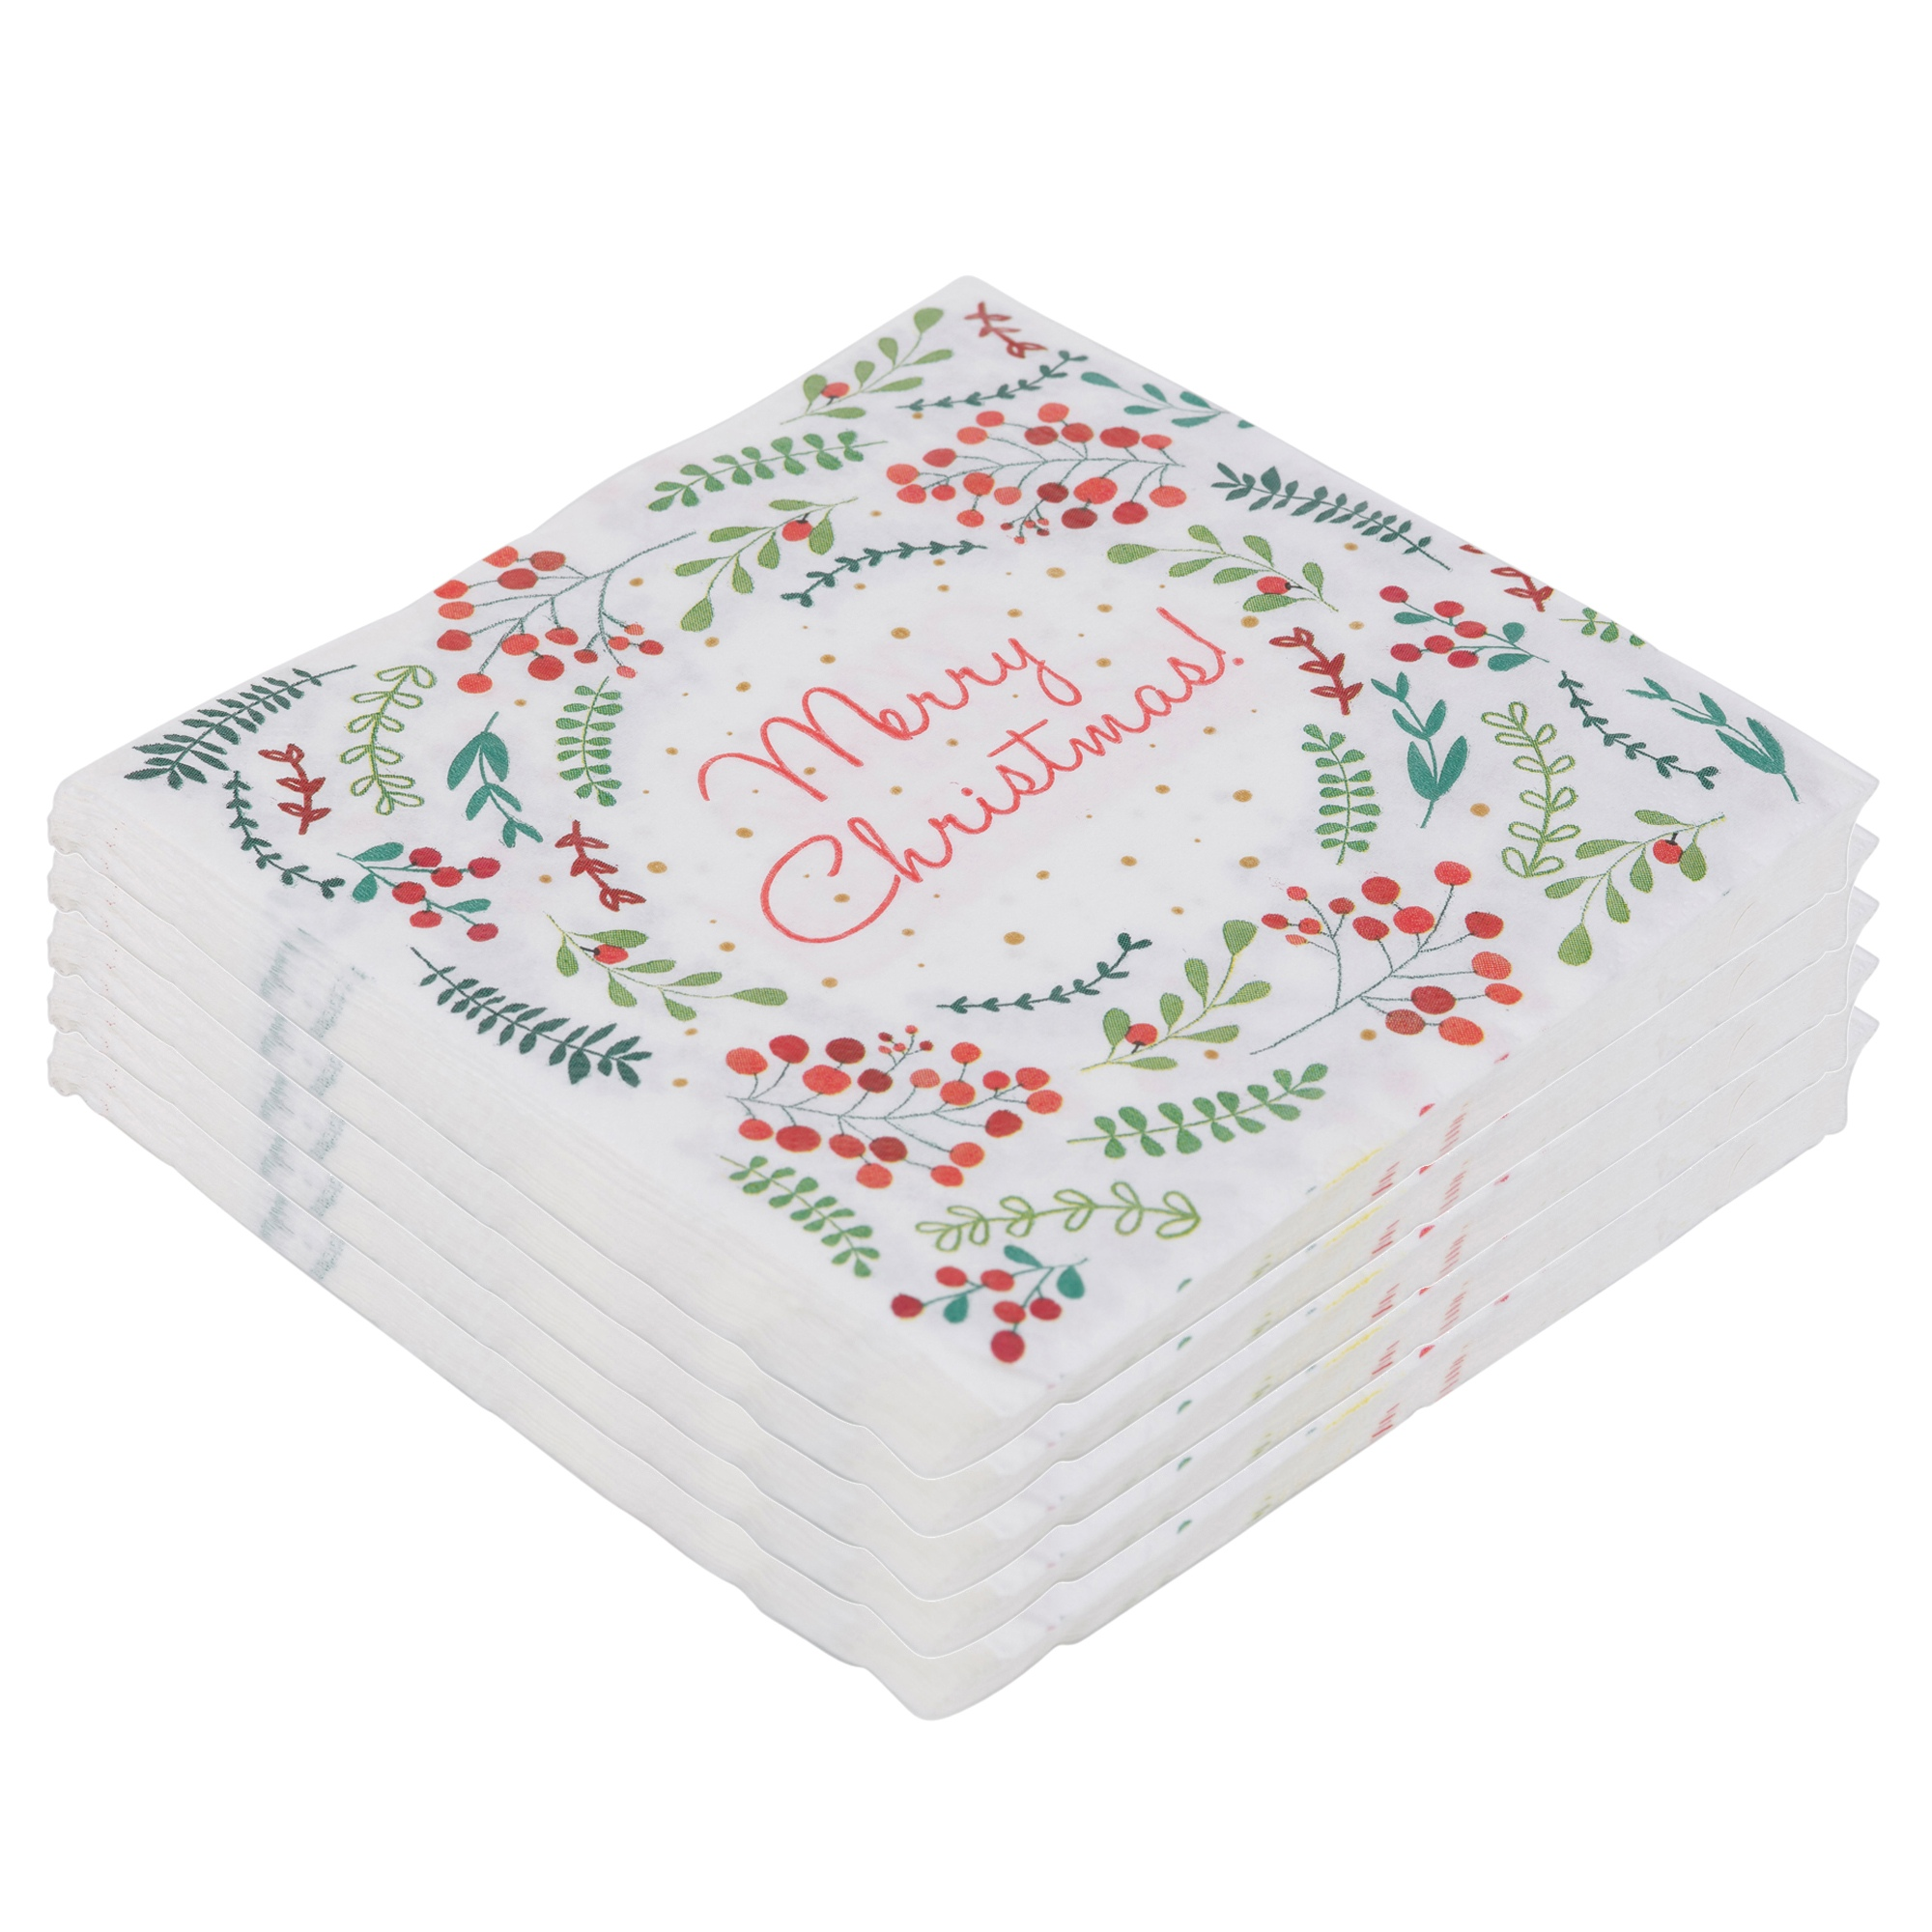 Christmas Napkins.Details About 20 40 60 80 100 X 2 Ply Paper Christmas Xmas Serviettes Napkins Table Party